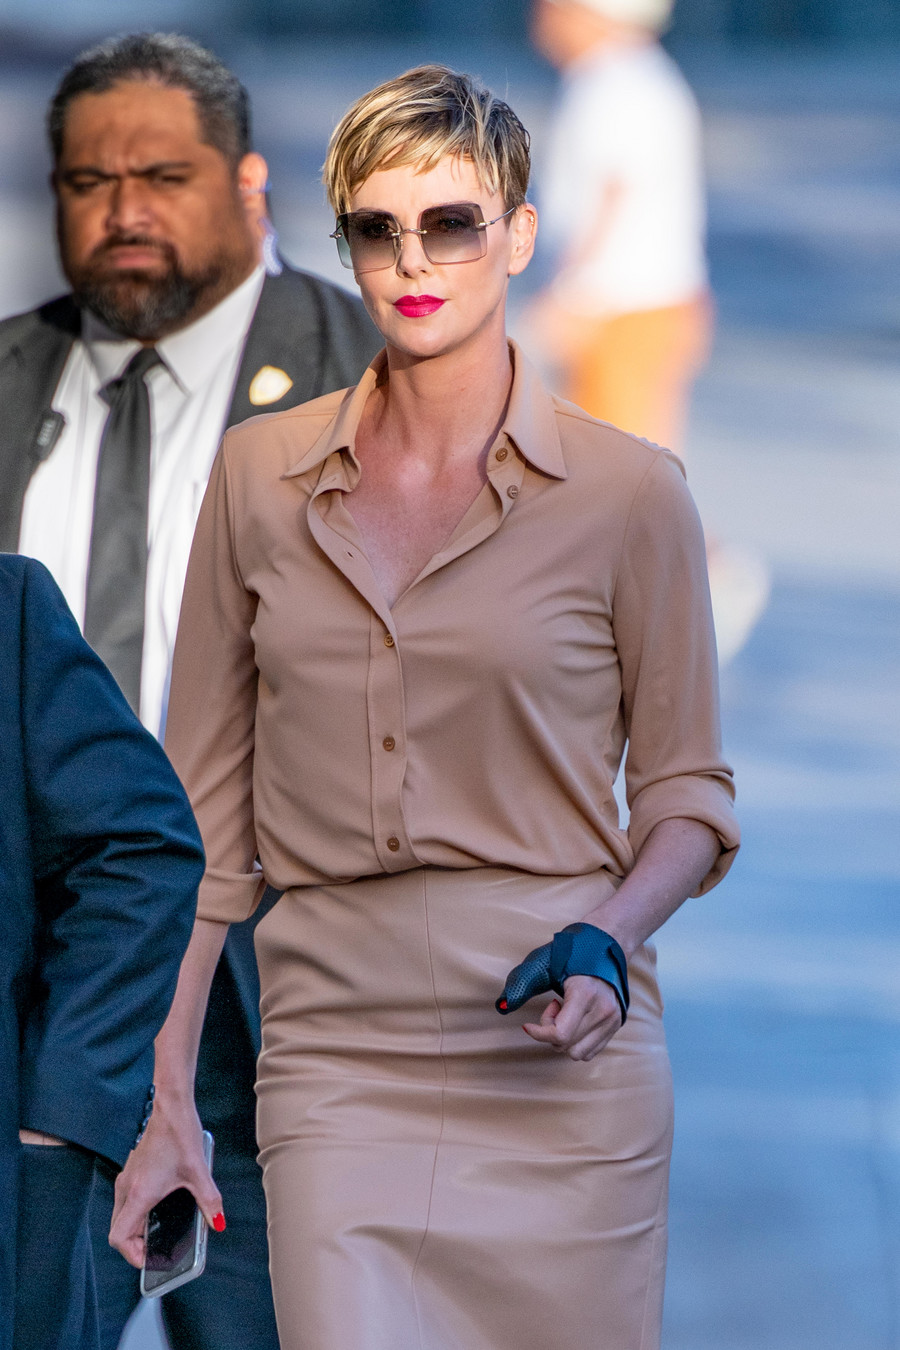 Charlize Theron / RB/Bauer-Griffin / GettyImages